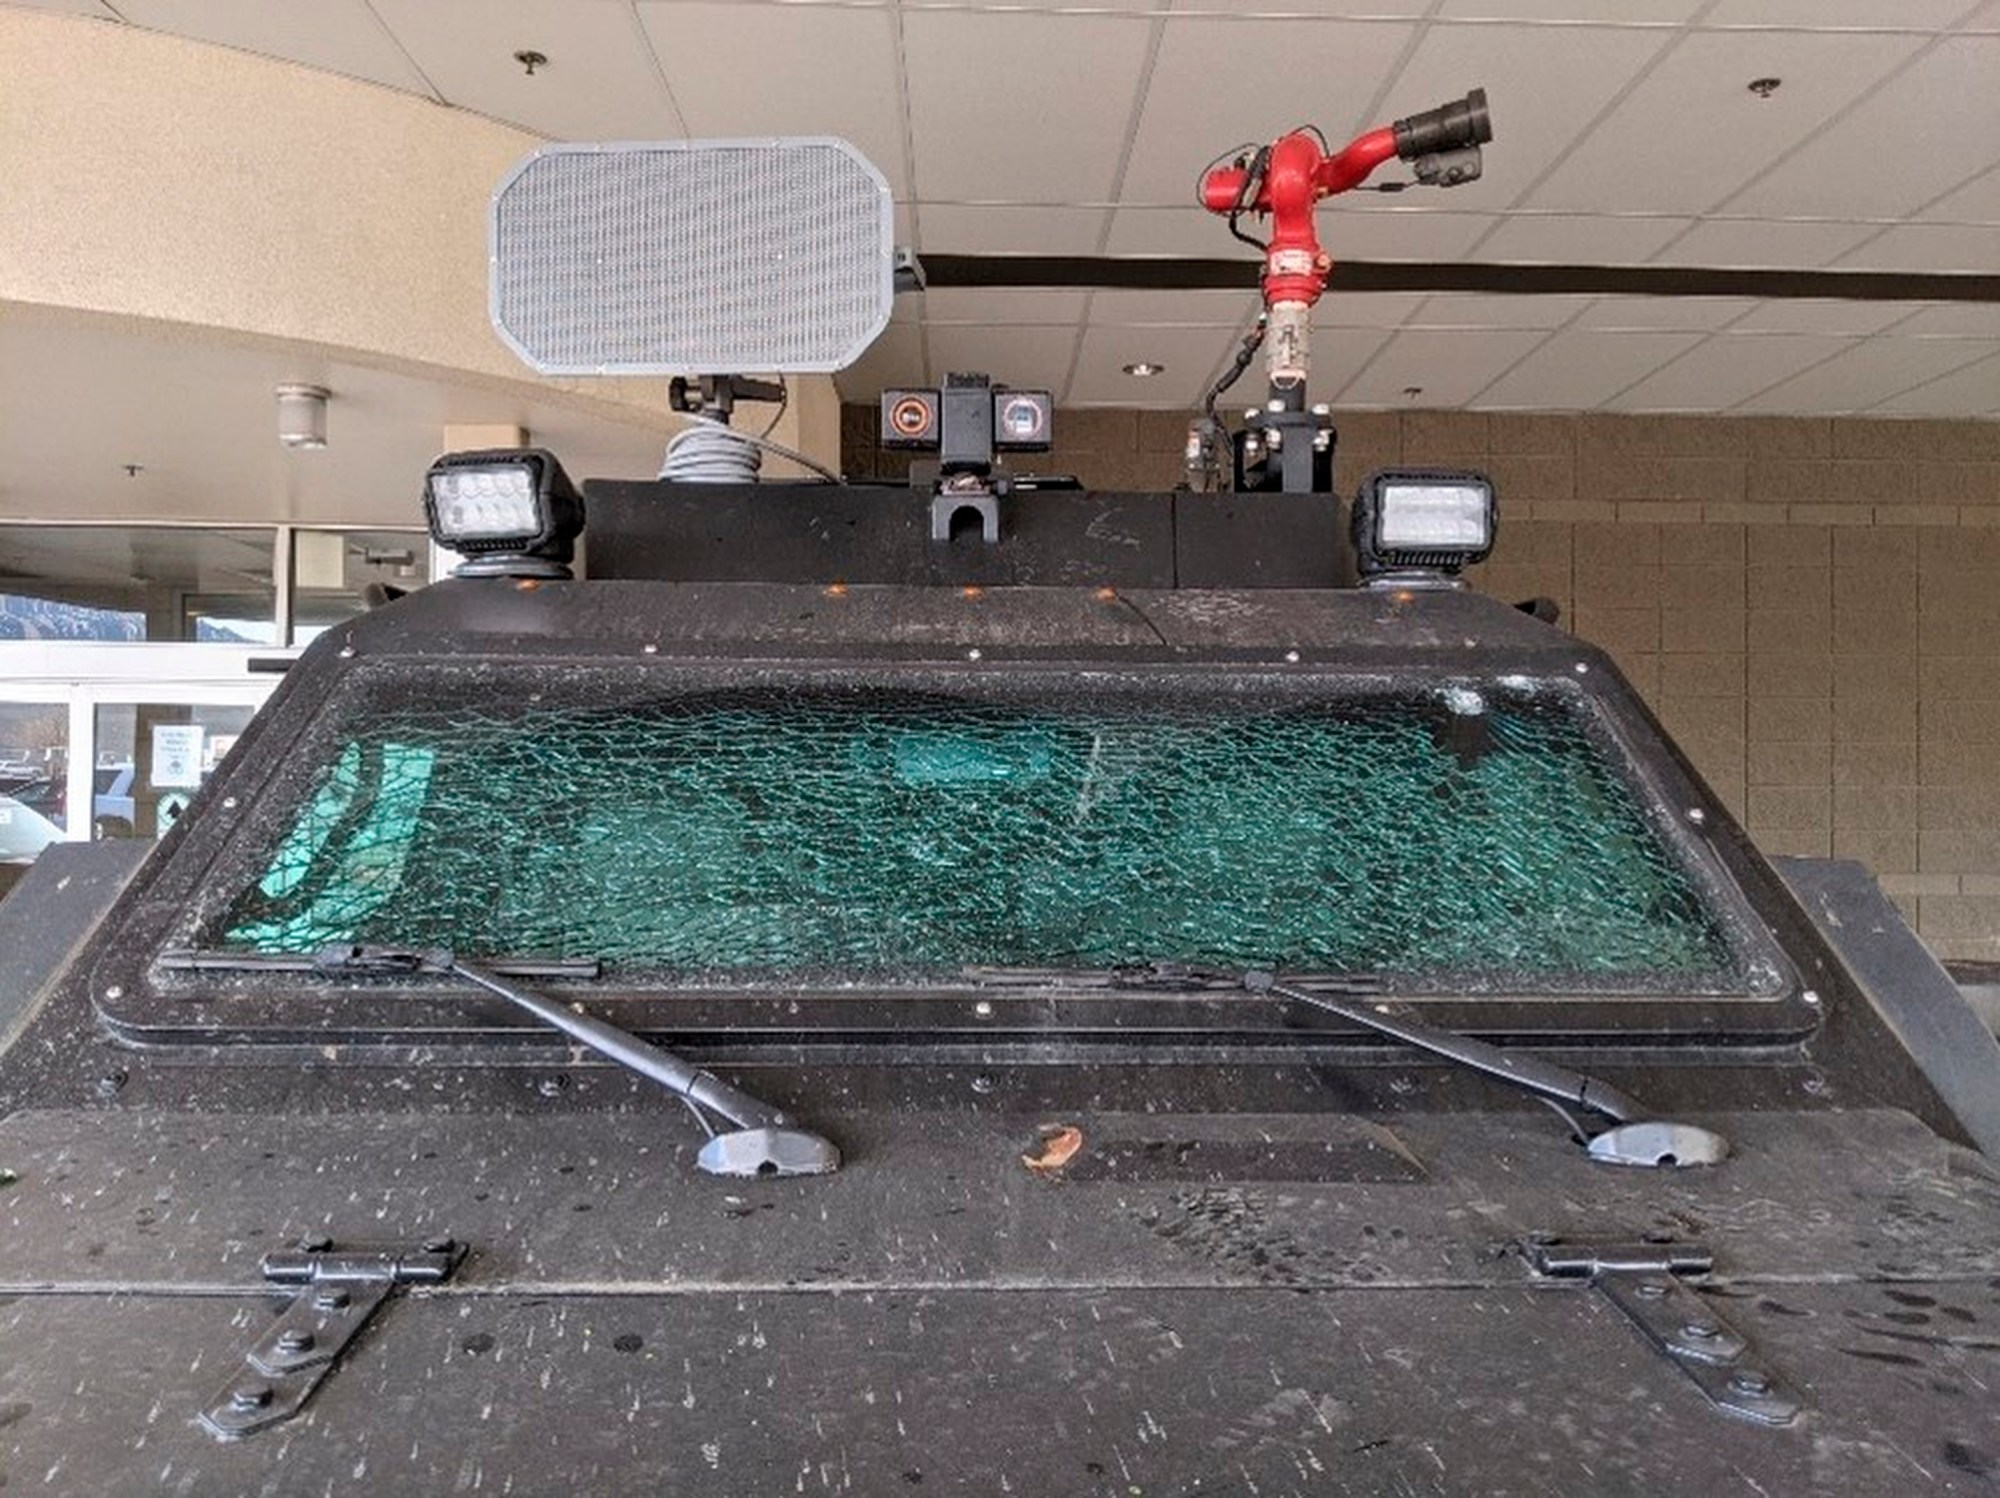 This Sunday, March 7, 2021, photo released by the City of Boulder shows the smashed windshield of a Terradyne light armored patrol vehicle at the Boulder Police Department in Boulder, Colo. (Boulder Police Department/ City of Boulder via AP)